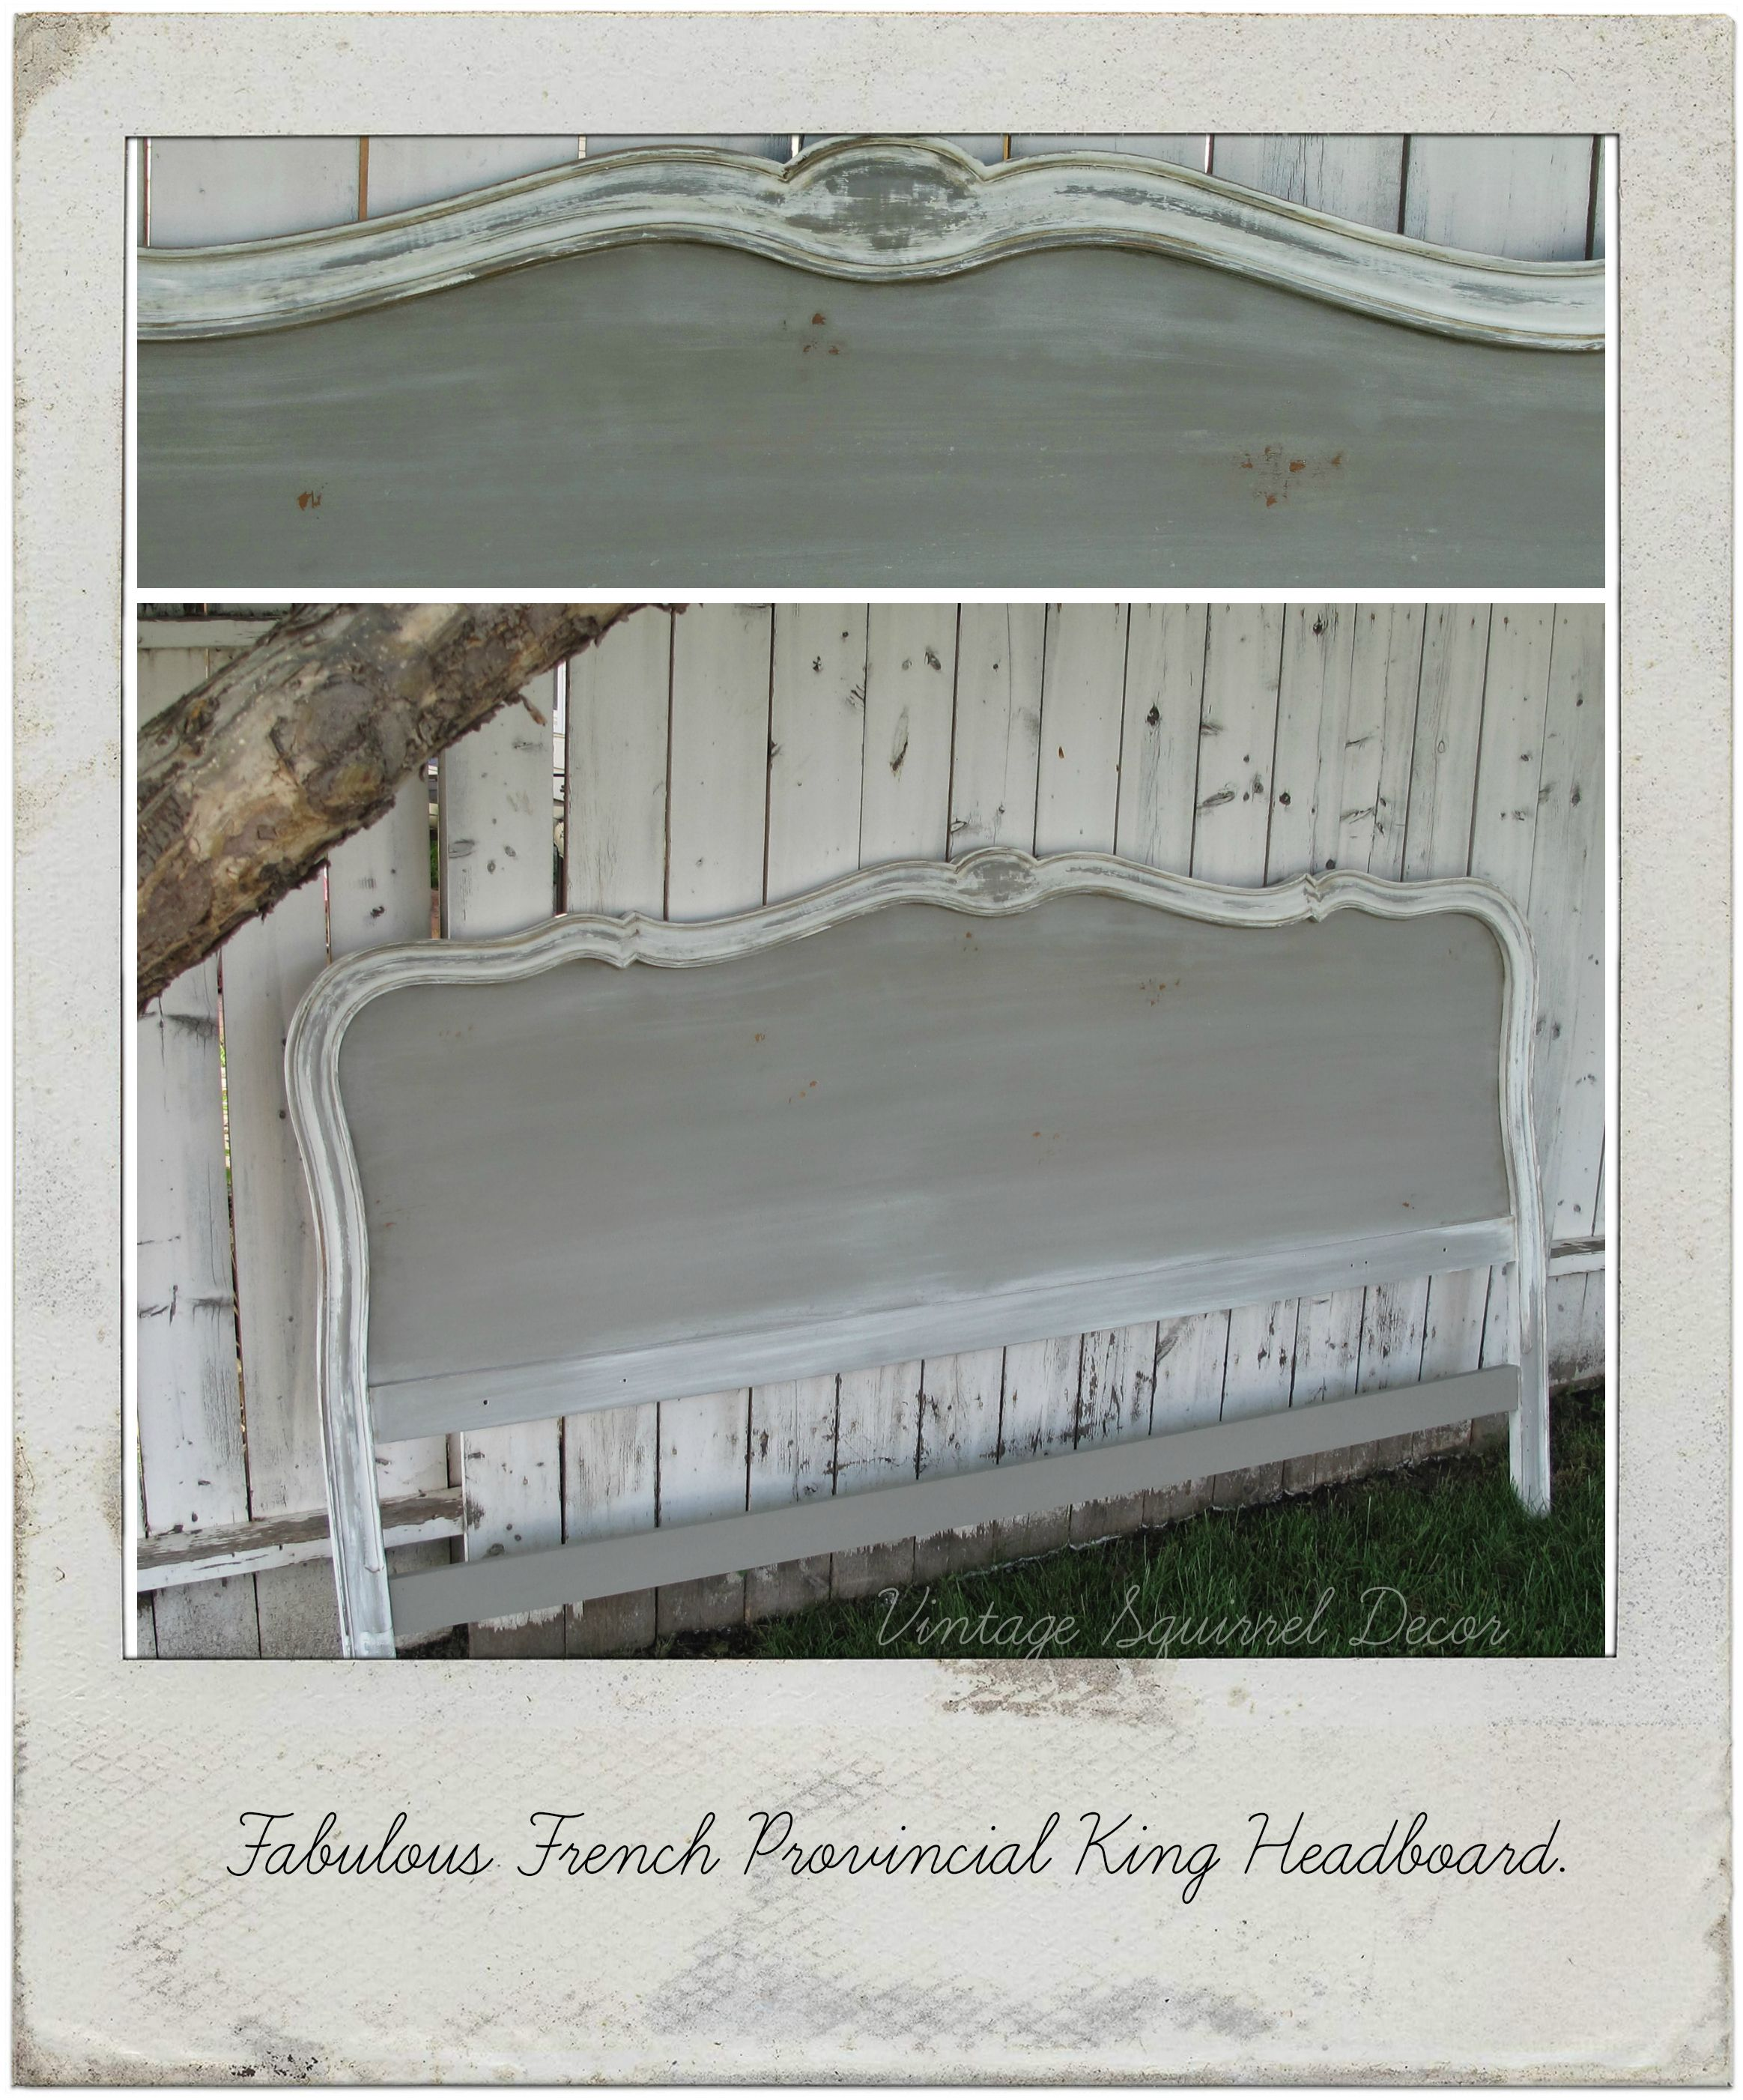 Vintage French Provincial King Headboard Painted In French Linen